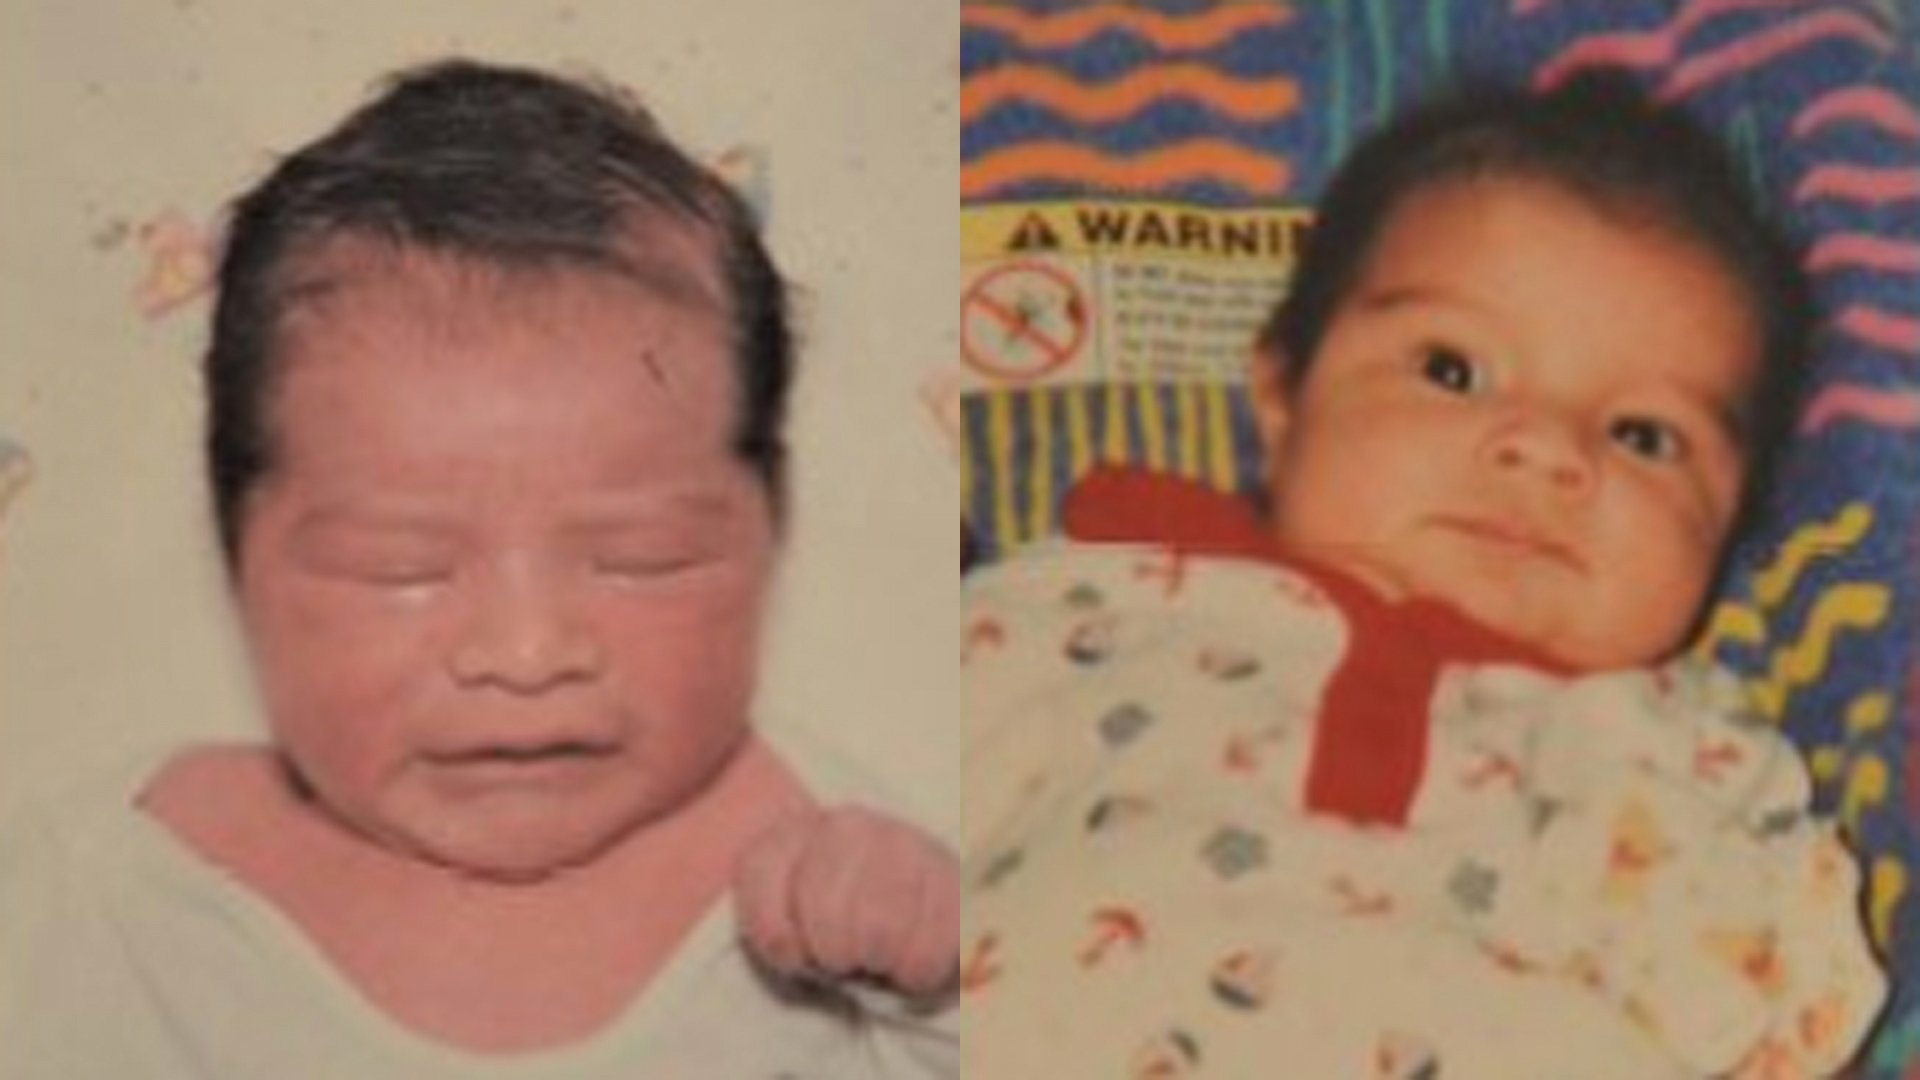 Two children of Paul Allen Perez, who is suspected of killing them, are seen in photos released by the Yolo County Sheriff's Office.